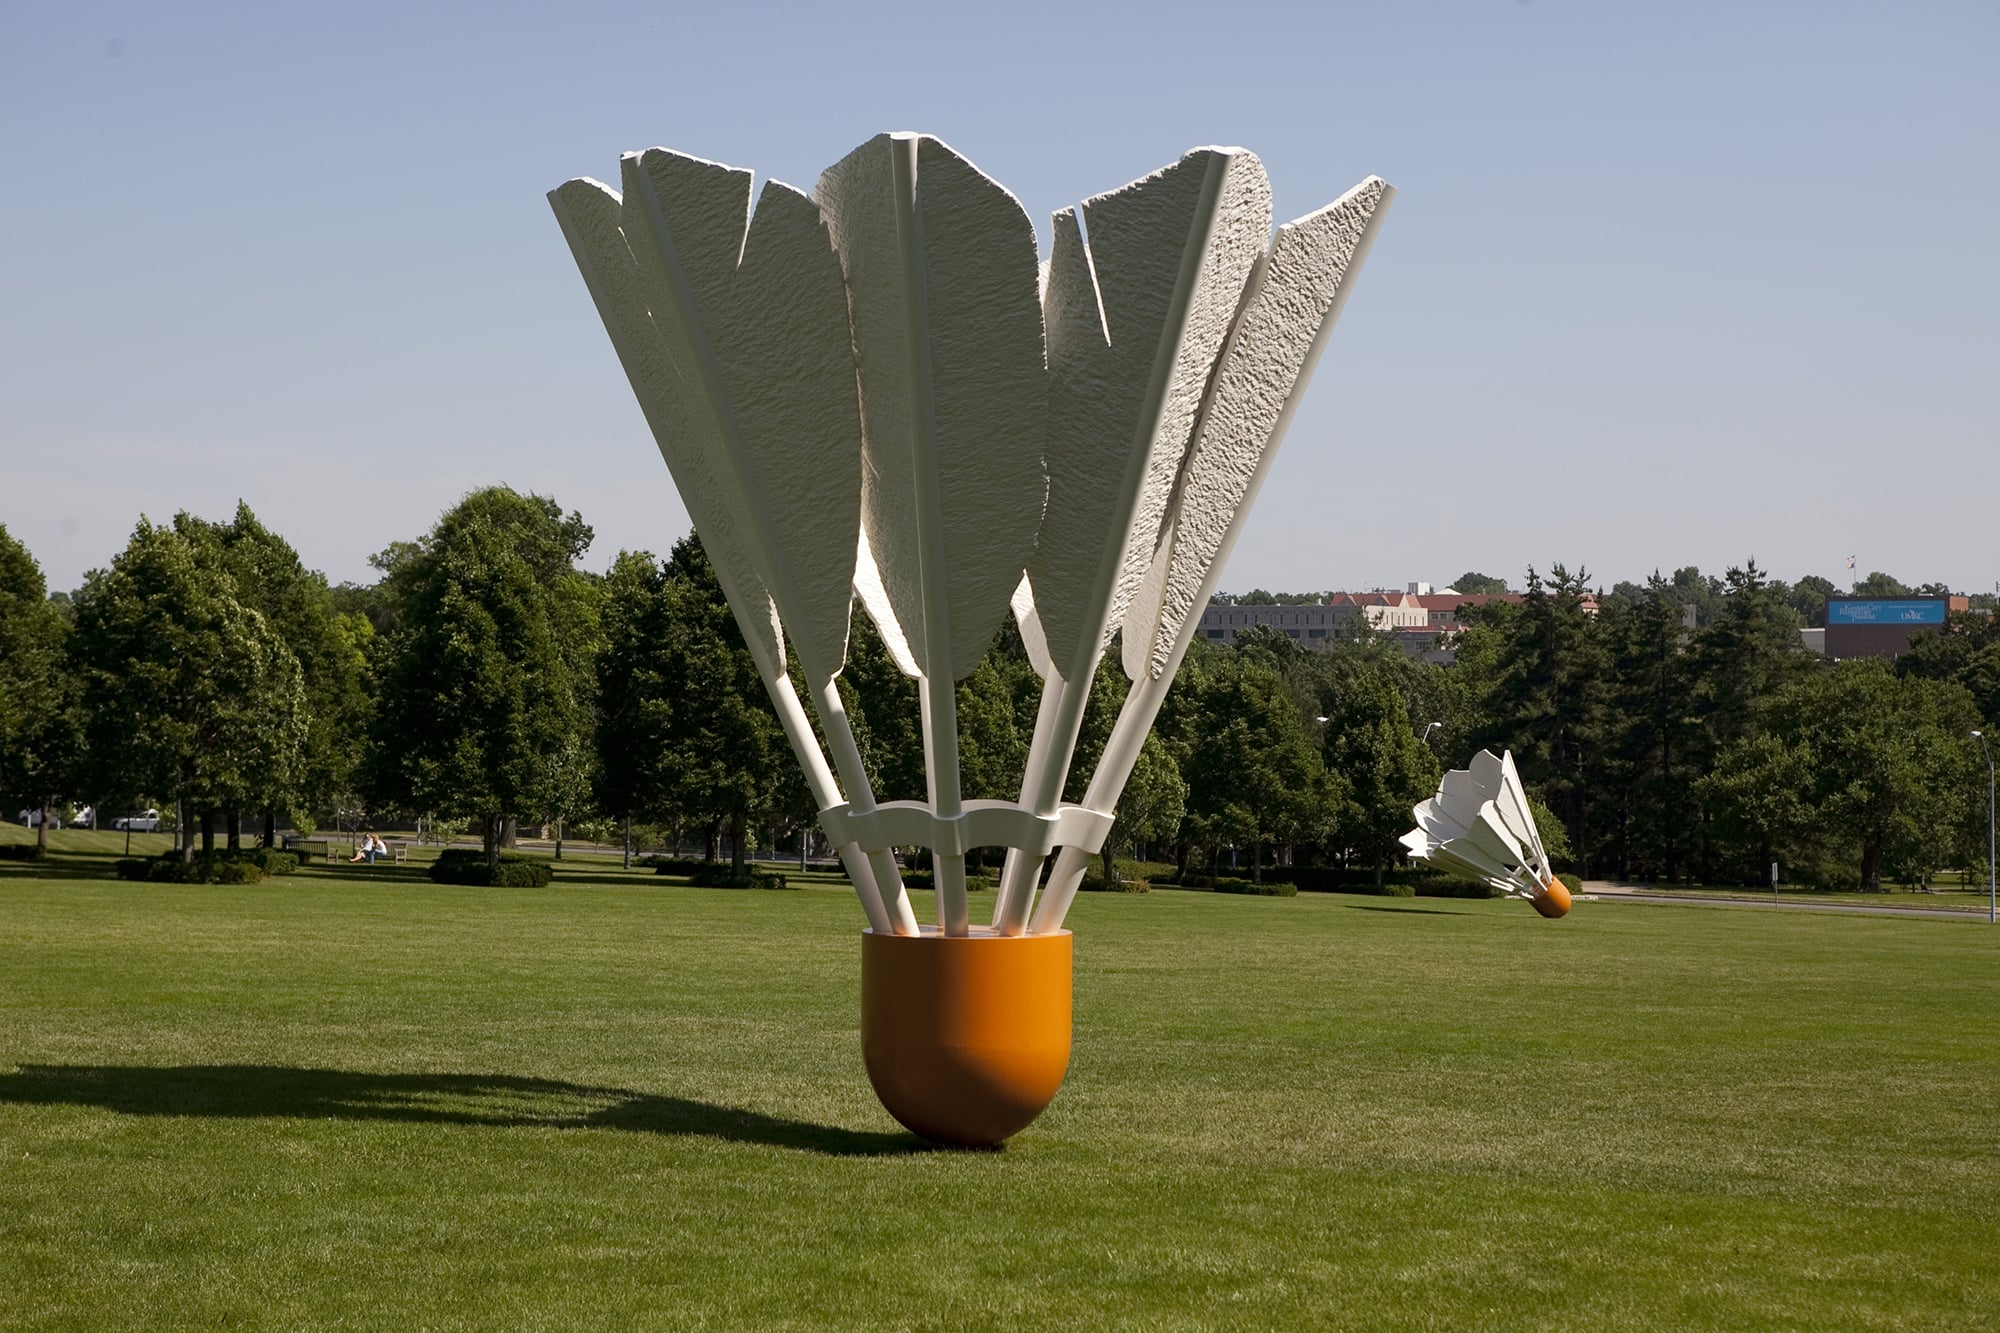 The World's Largest Shuttlecocks on a Missouri Road Trip